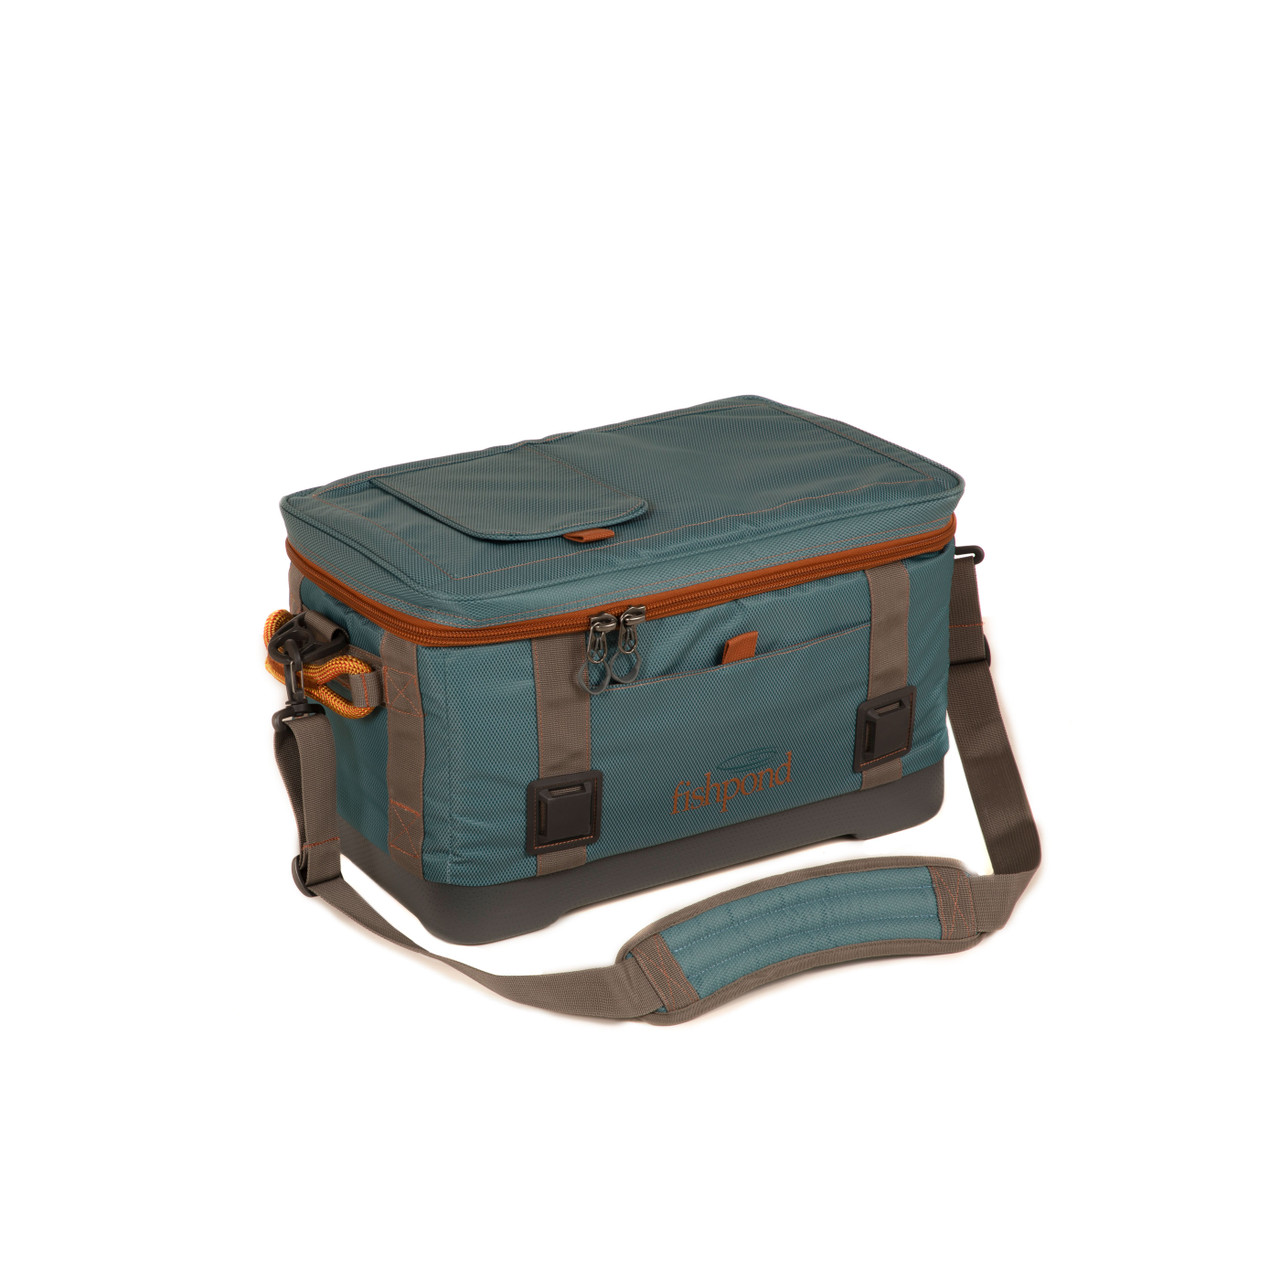 Fishpond Hailstorm Soft Cooler